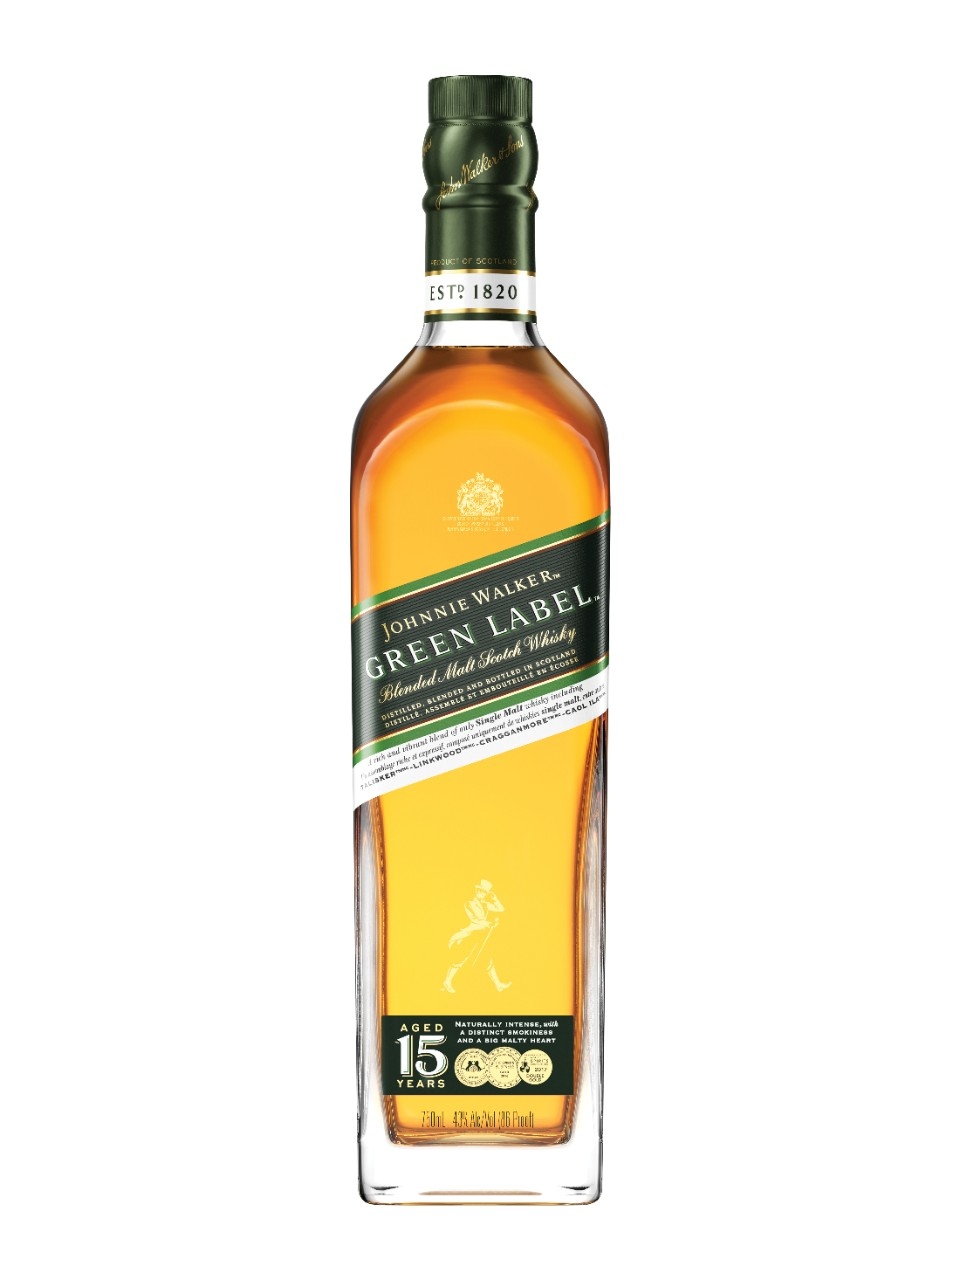 Johnnie Walker Green Label Scotch Whisky                                                                                        -A